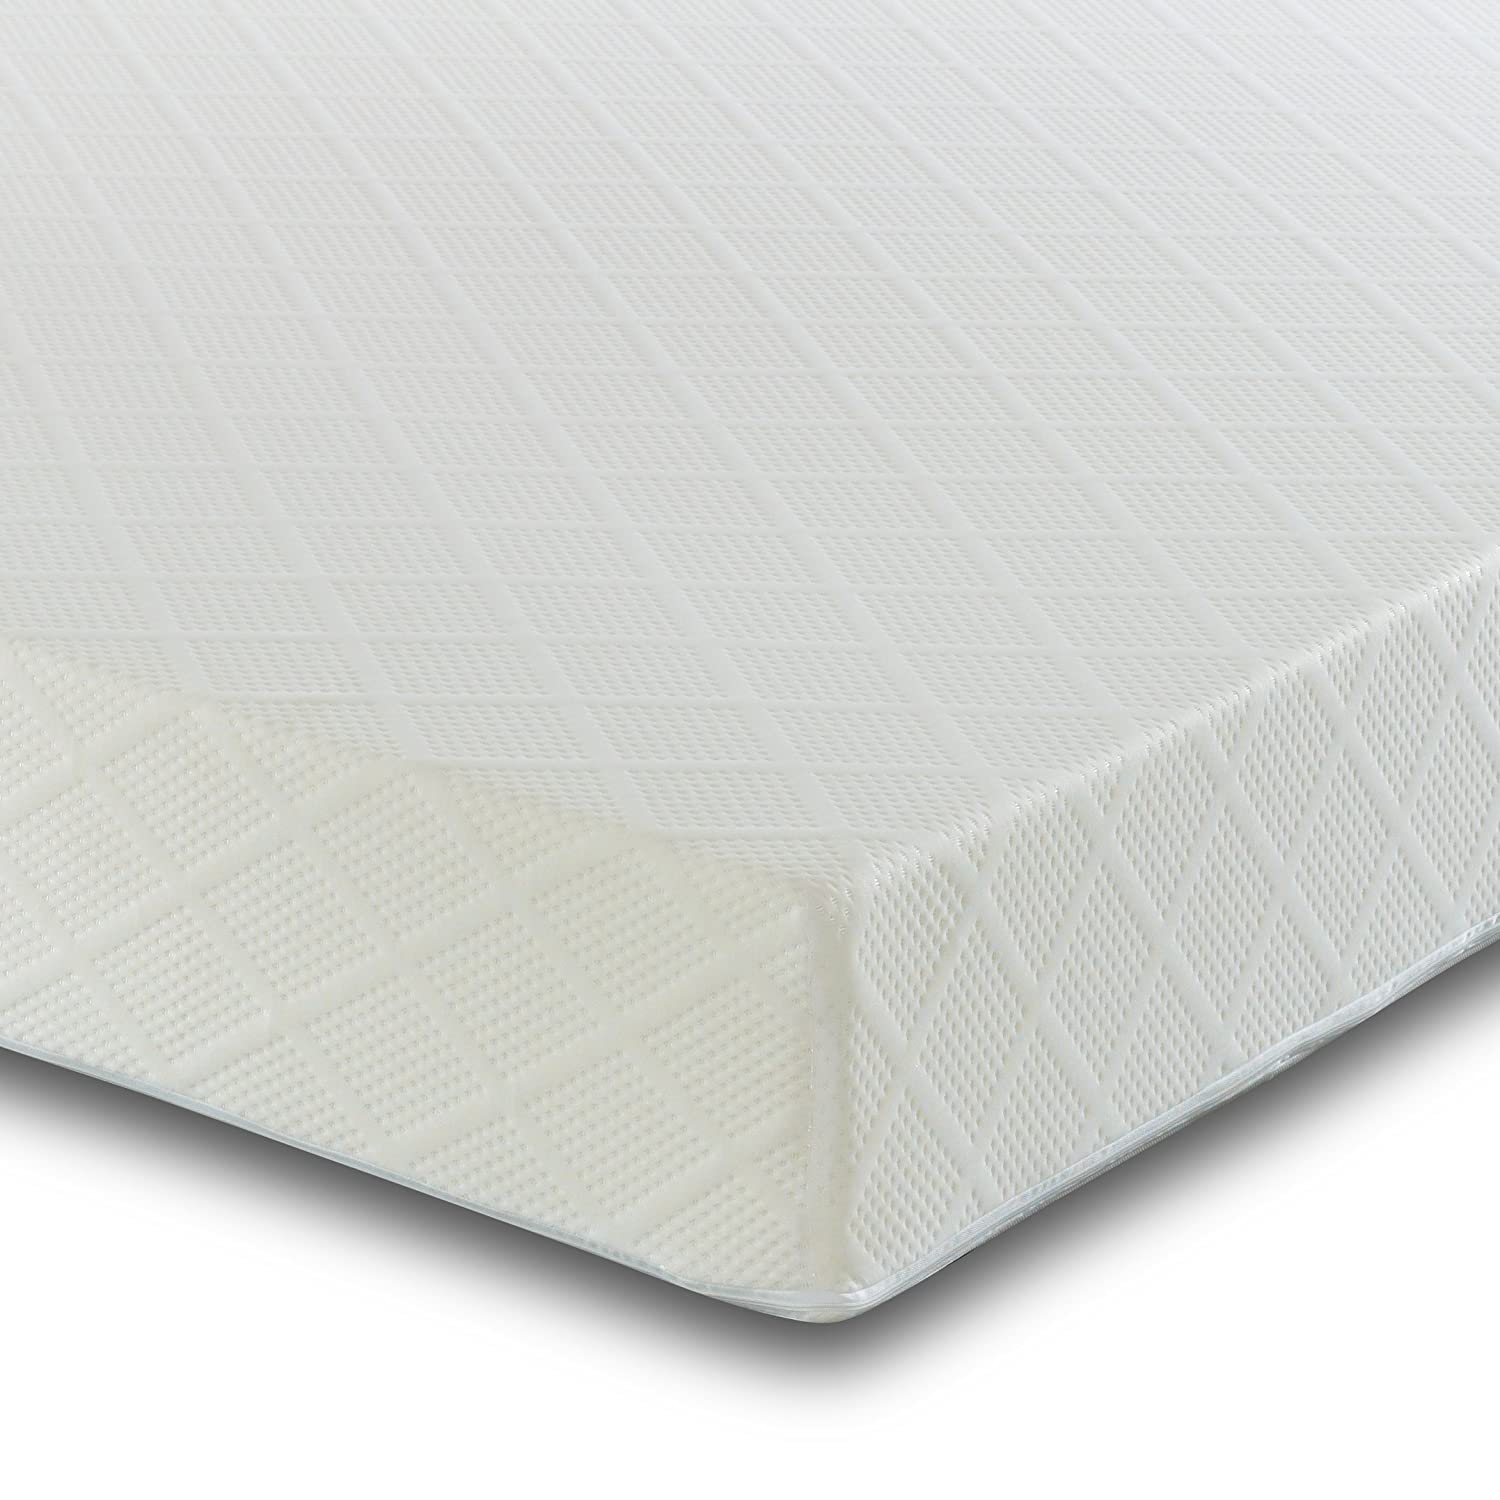 4Ft6 Double Reflex Foam Mattress with Two Pillows - Orthopaedic Support - Hypoallergenic - Firm Visco Therapy WS10MFM46